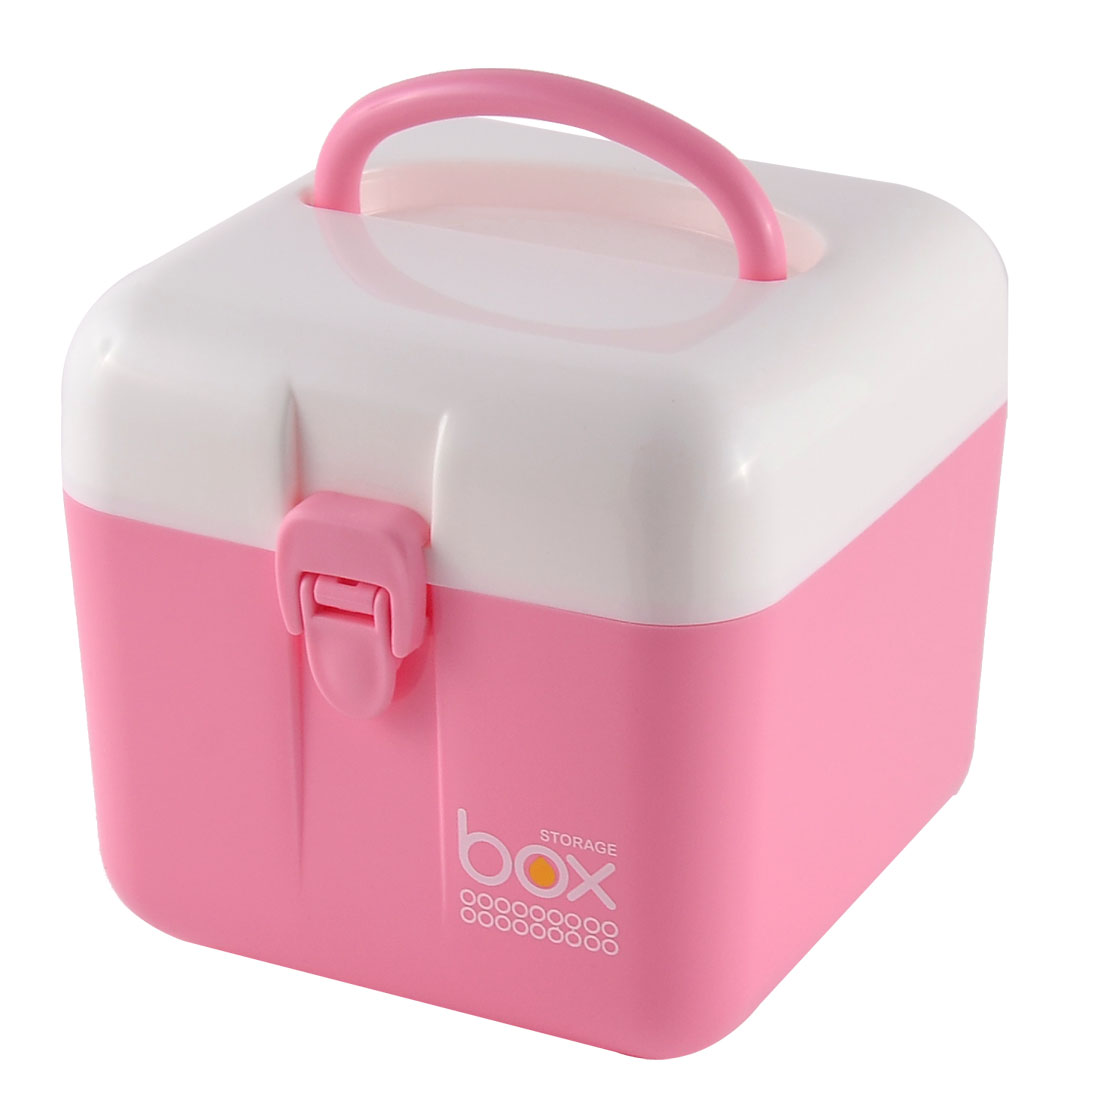 Office School Jewelry Key Coins Plastic Storage Organizer Box Case Pink